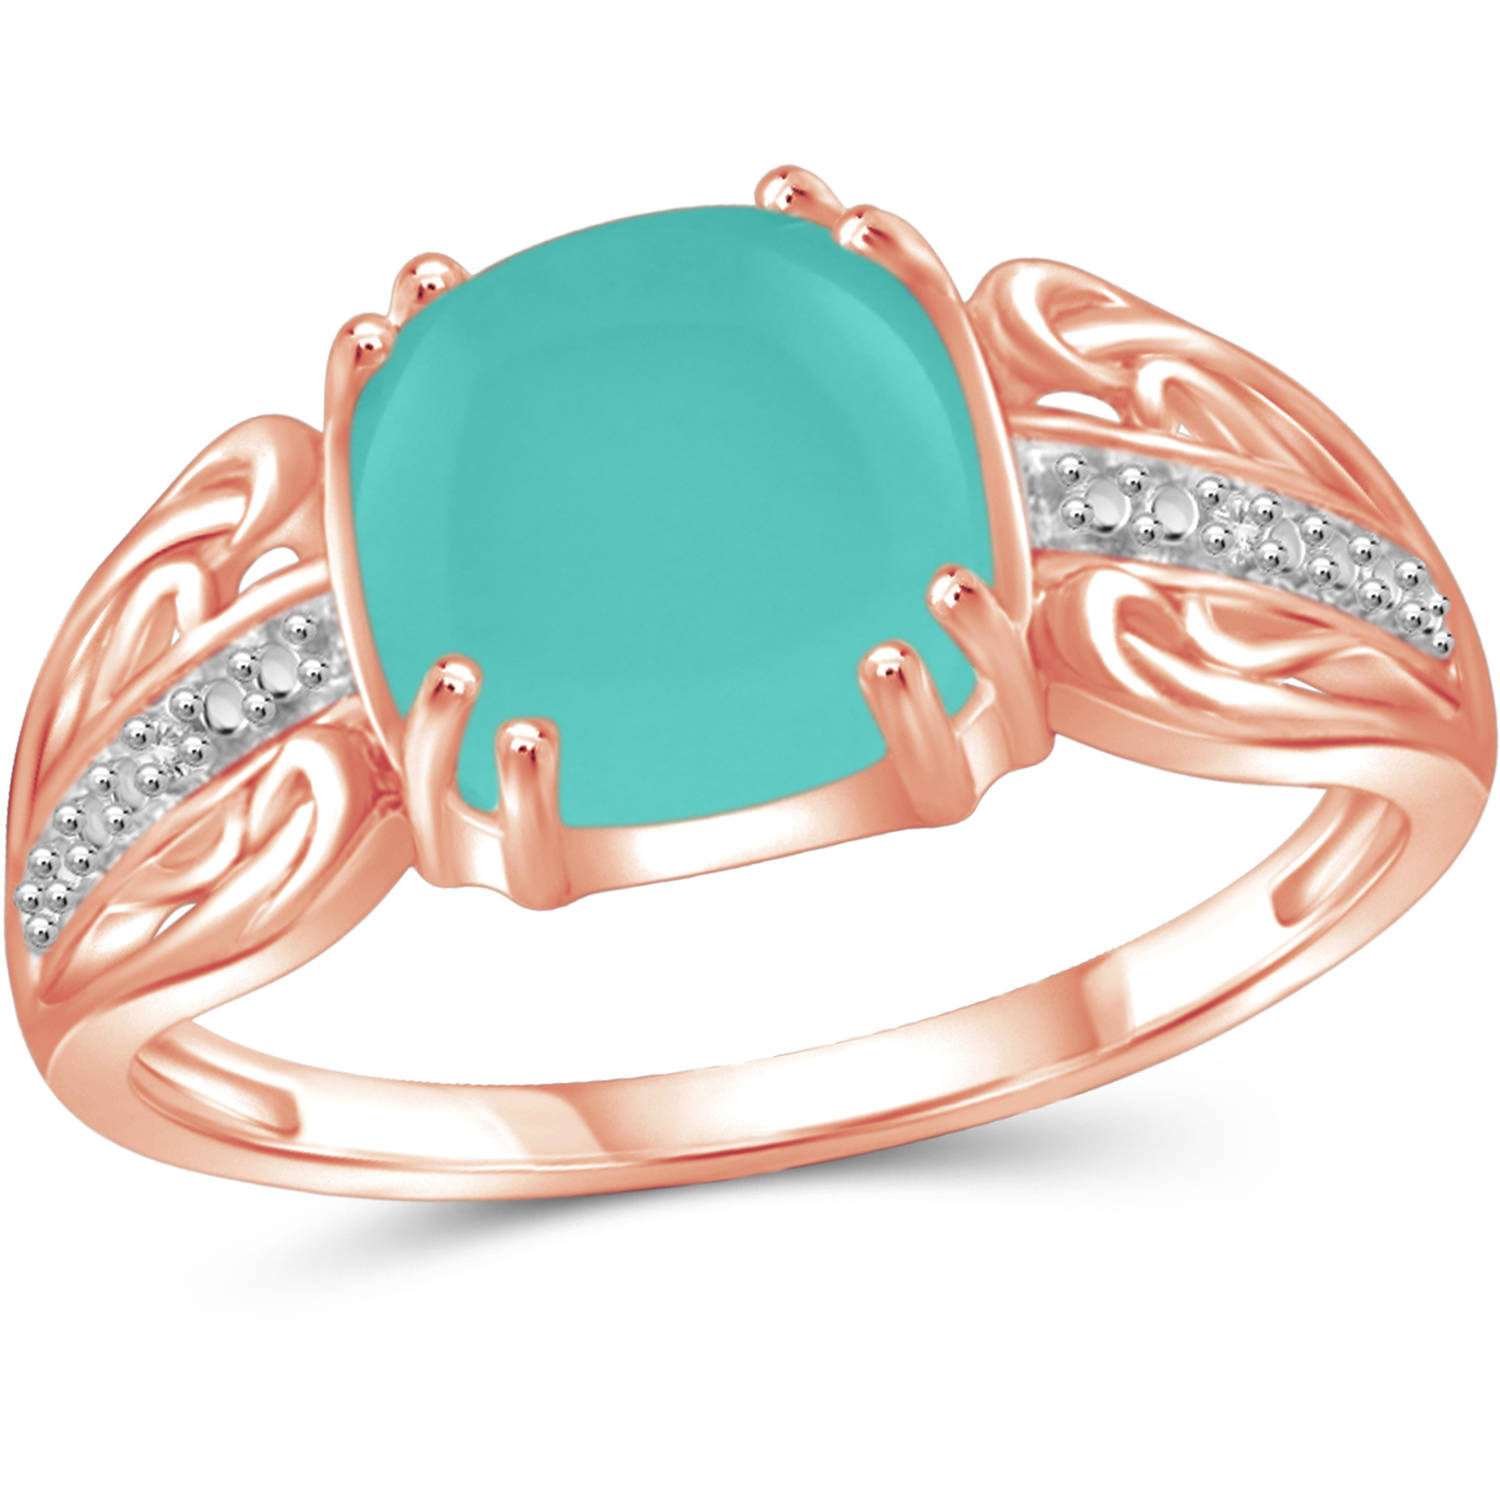 JewelersClub 2-1 2 Carat T.G.W. Chalcedony and White Diamond Accent Rose Gold over Silver Fashion Ring by JewelersClub